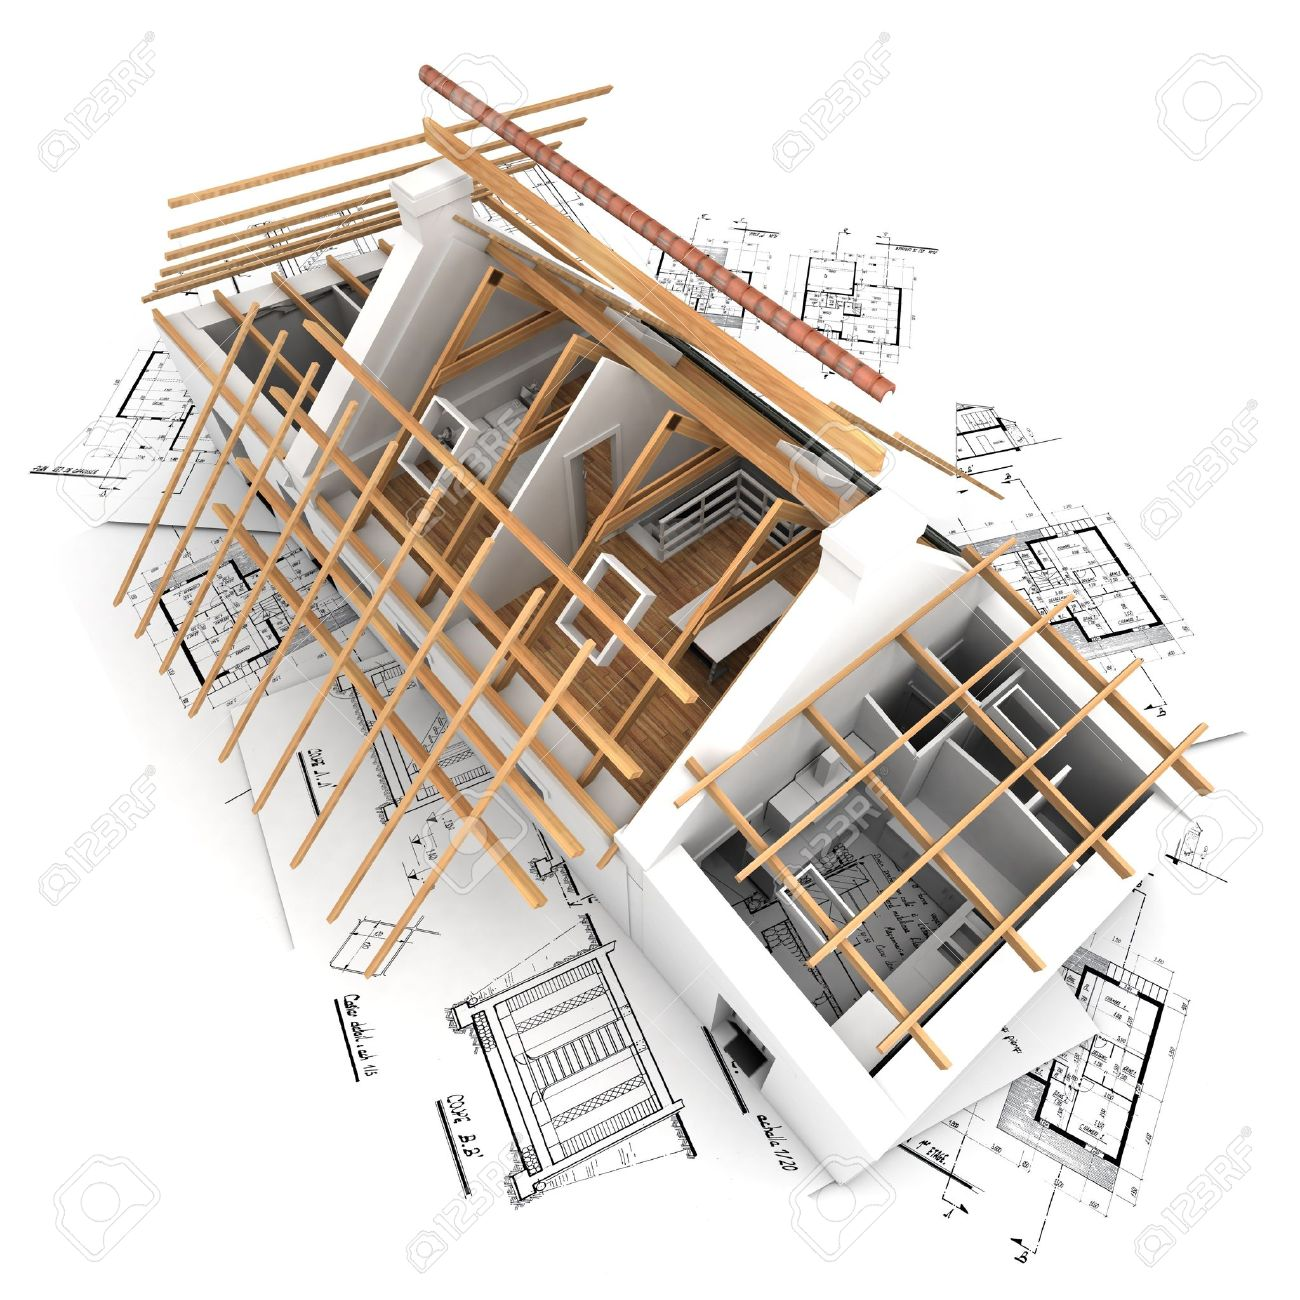 3d Rendering Of A House In The Process Of Roof Construction Stock Photo 2460509